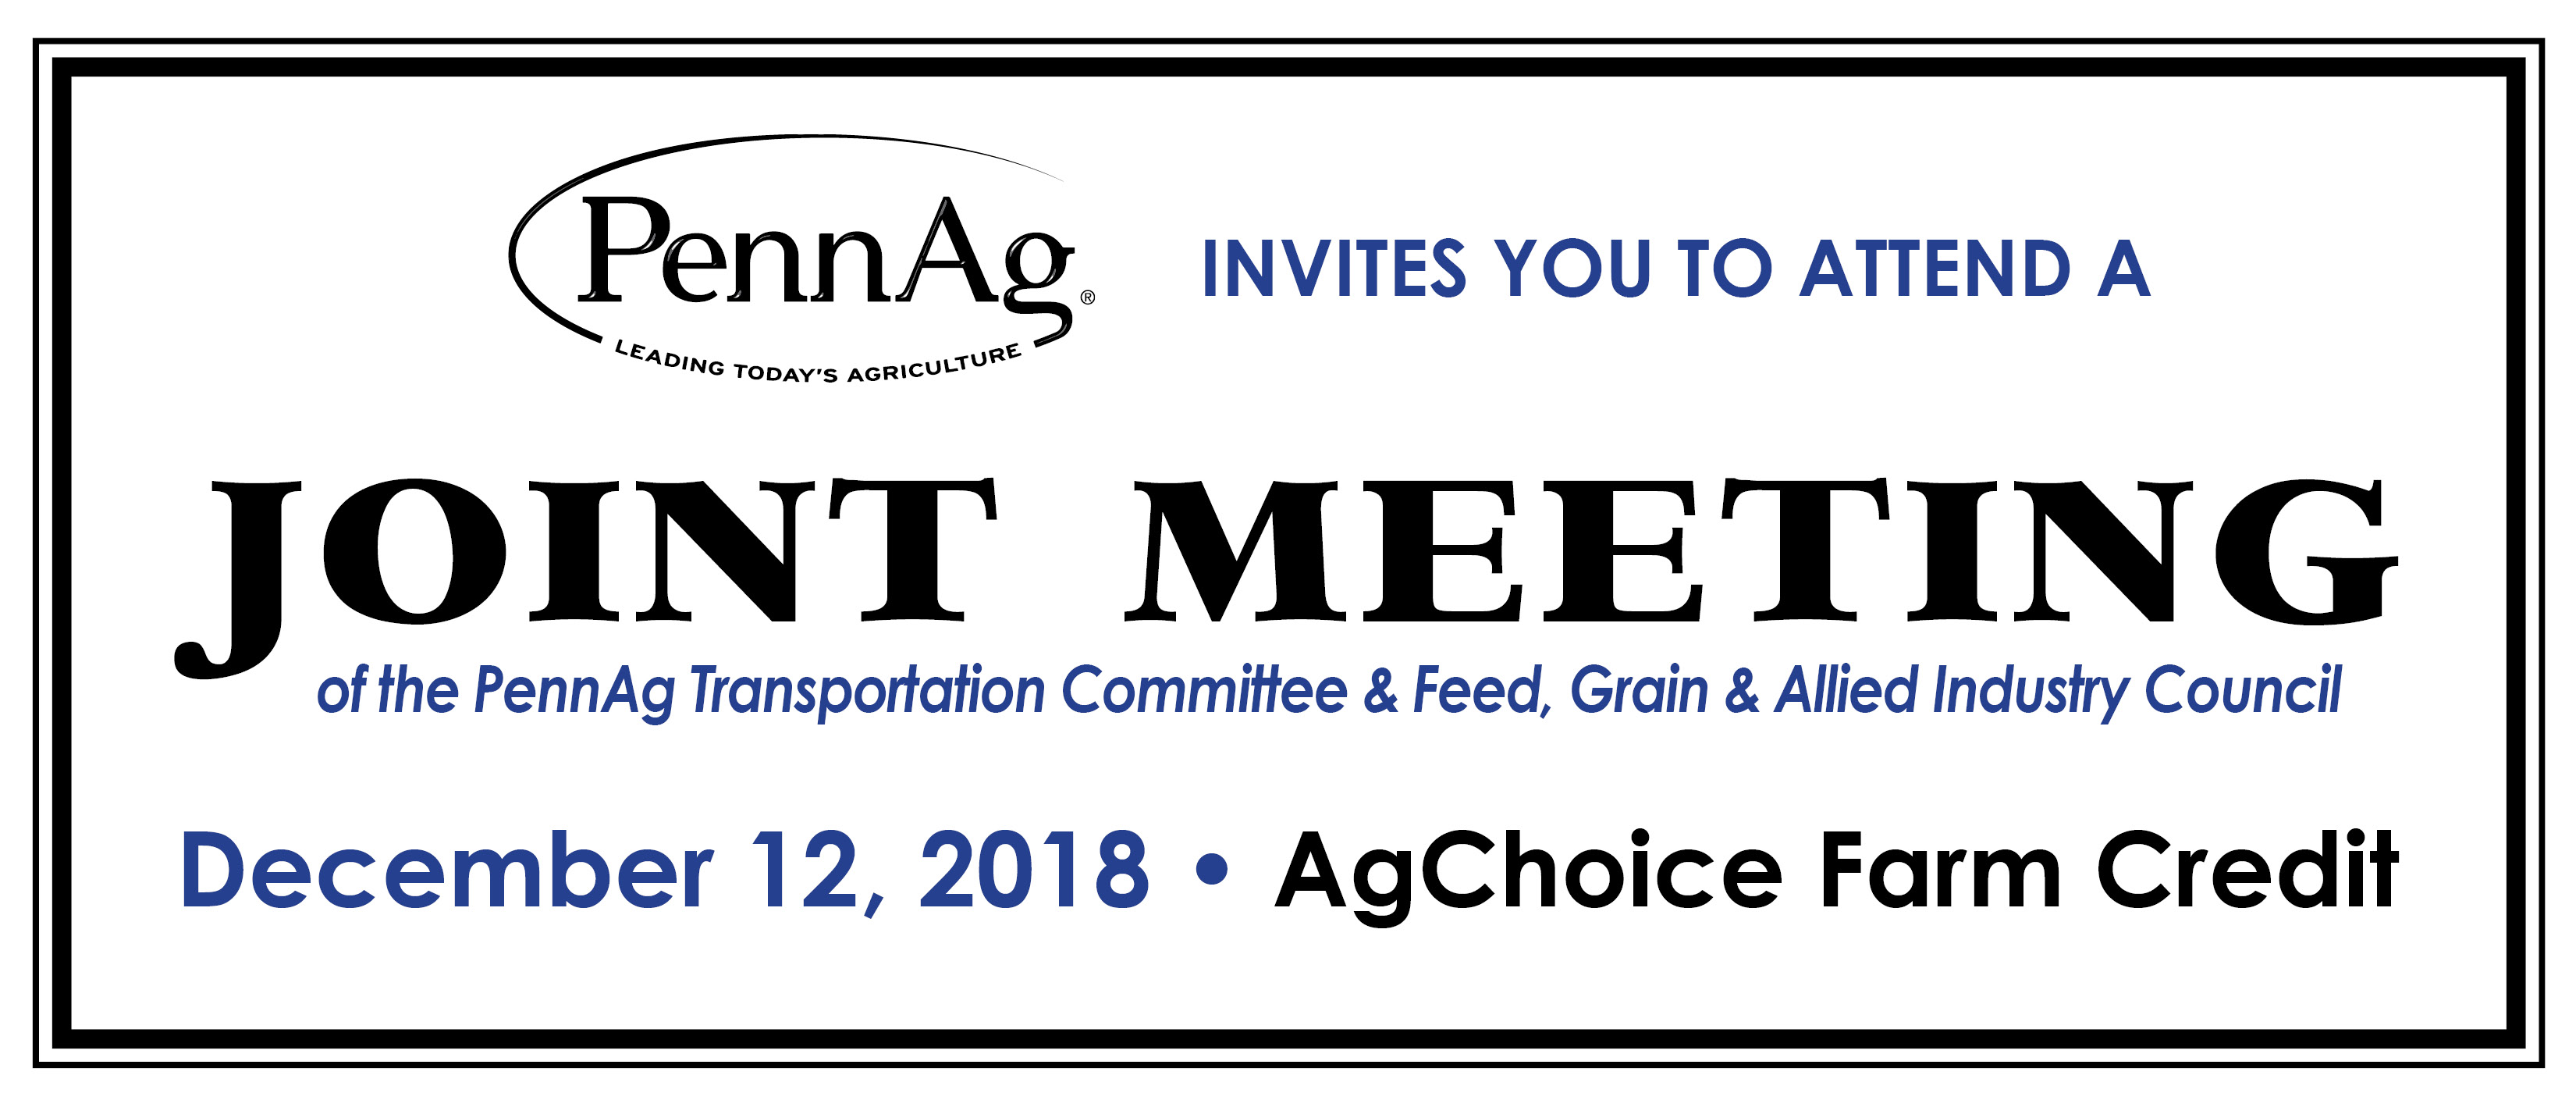 Joint Meeting: PennAg Transportation Committee & Feed, Grain & Allied Industry Council